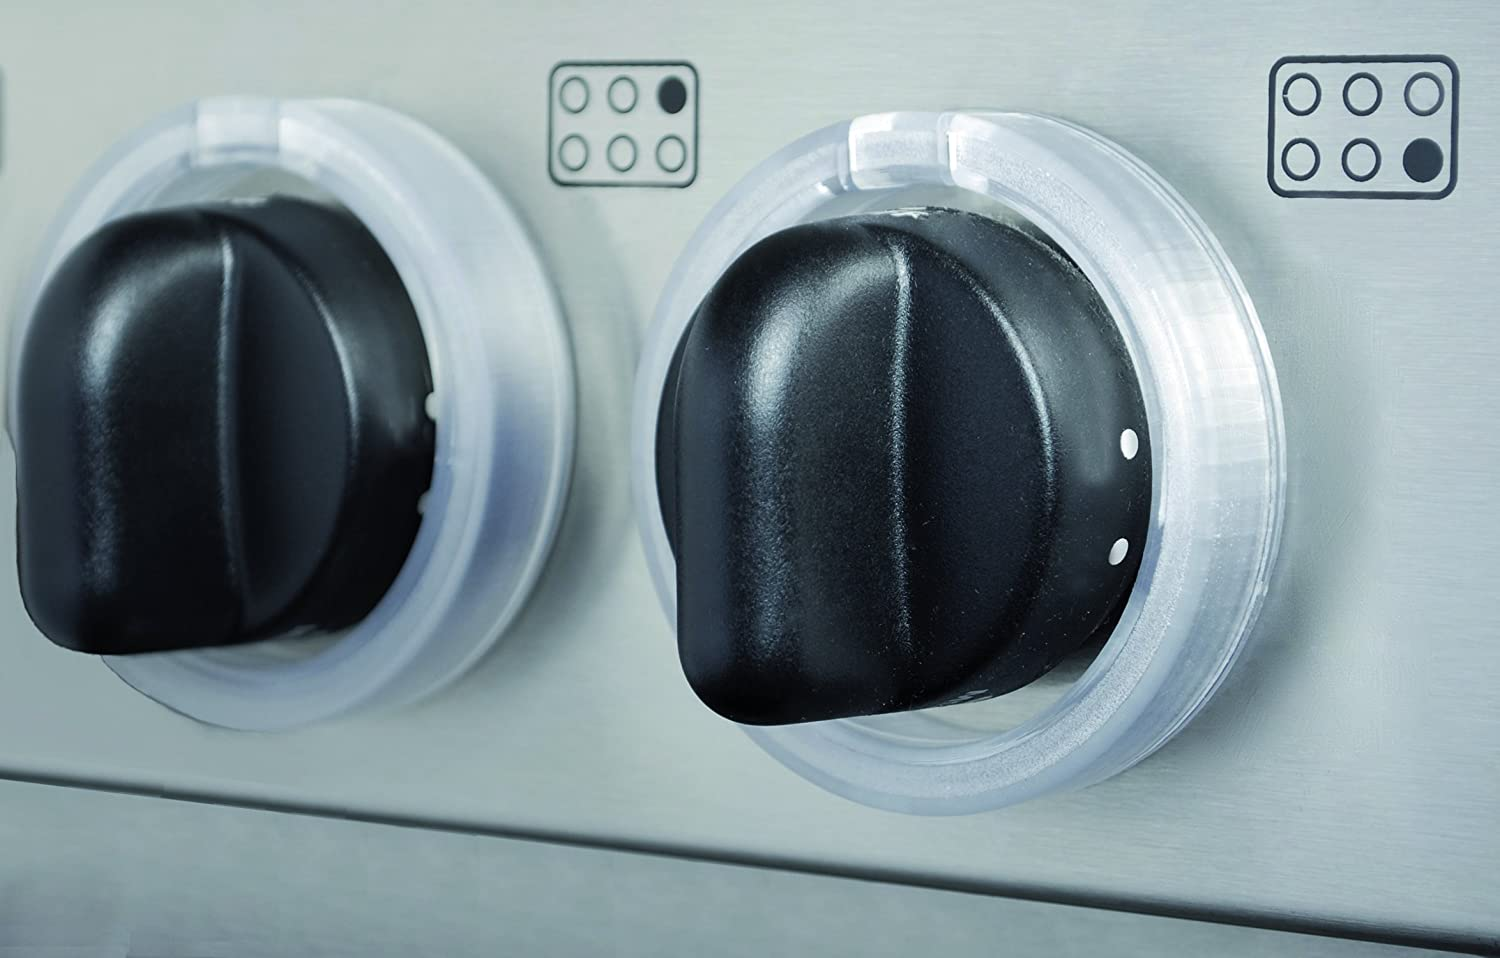 stove knobs. KidKusion Clearly Safe Stove Knobs Locks, Pack Of 5: Amazon.co.uk: Baby P